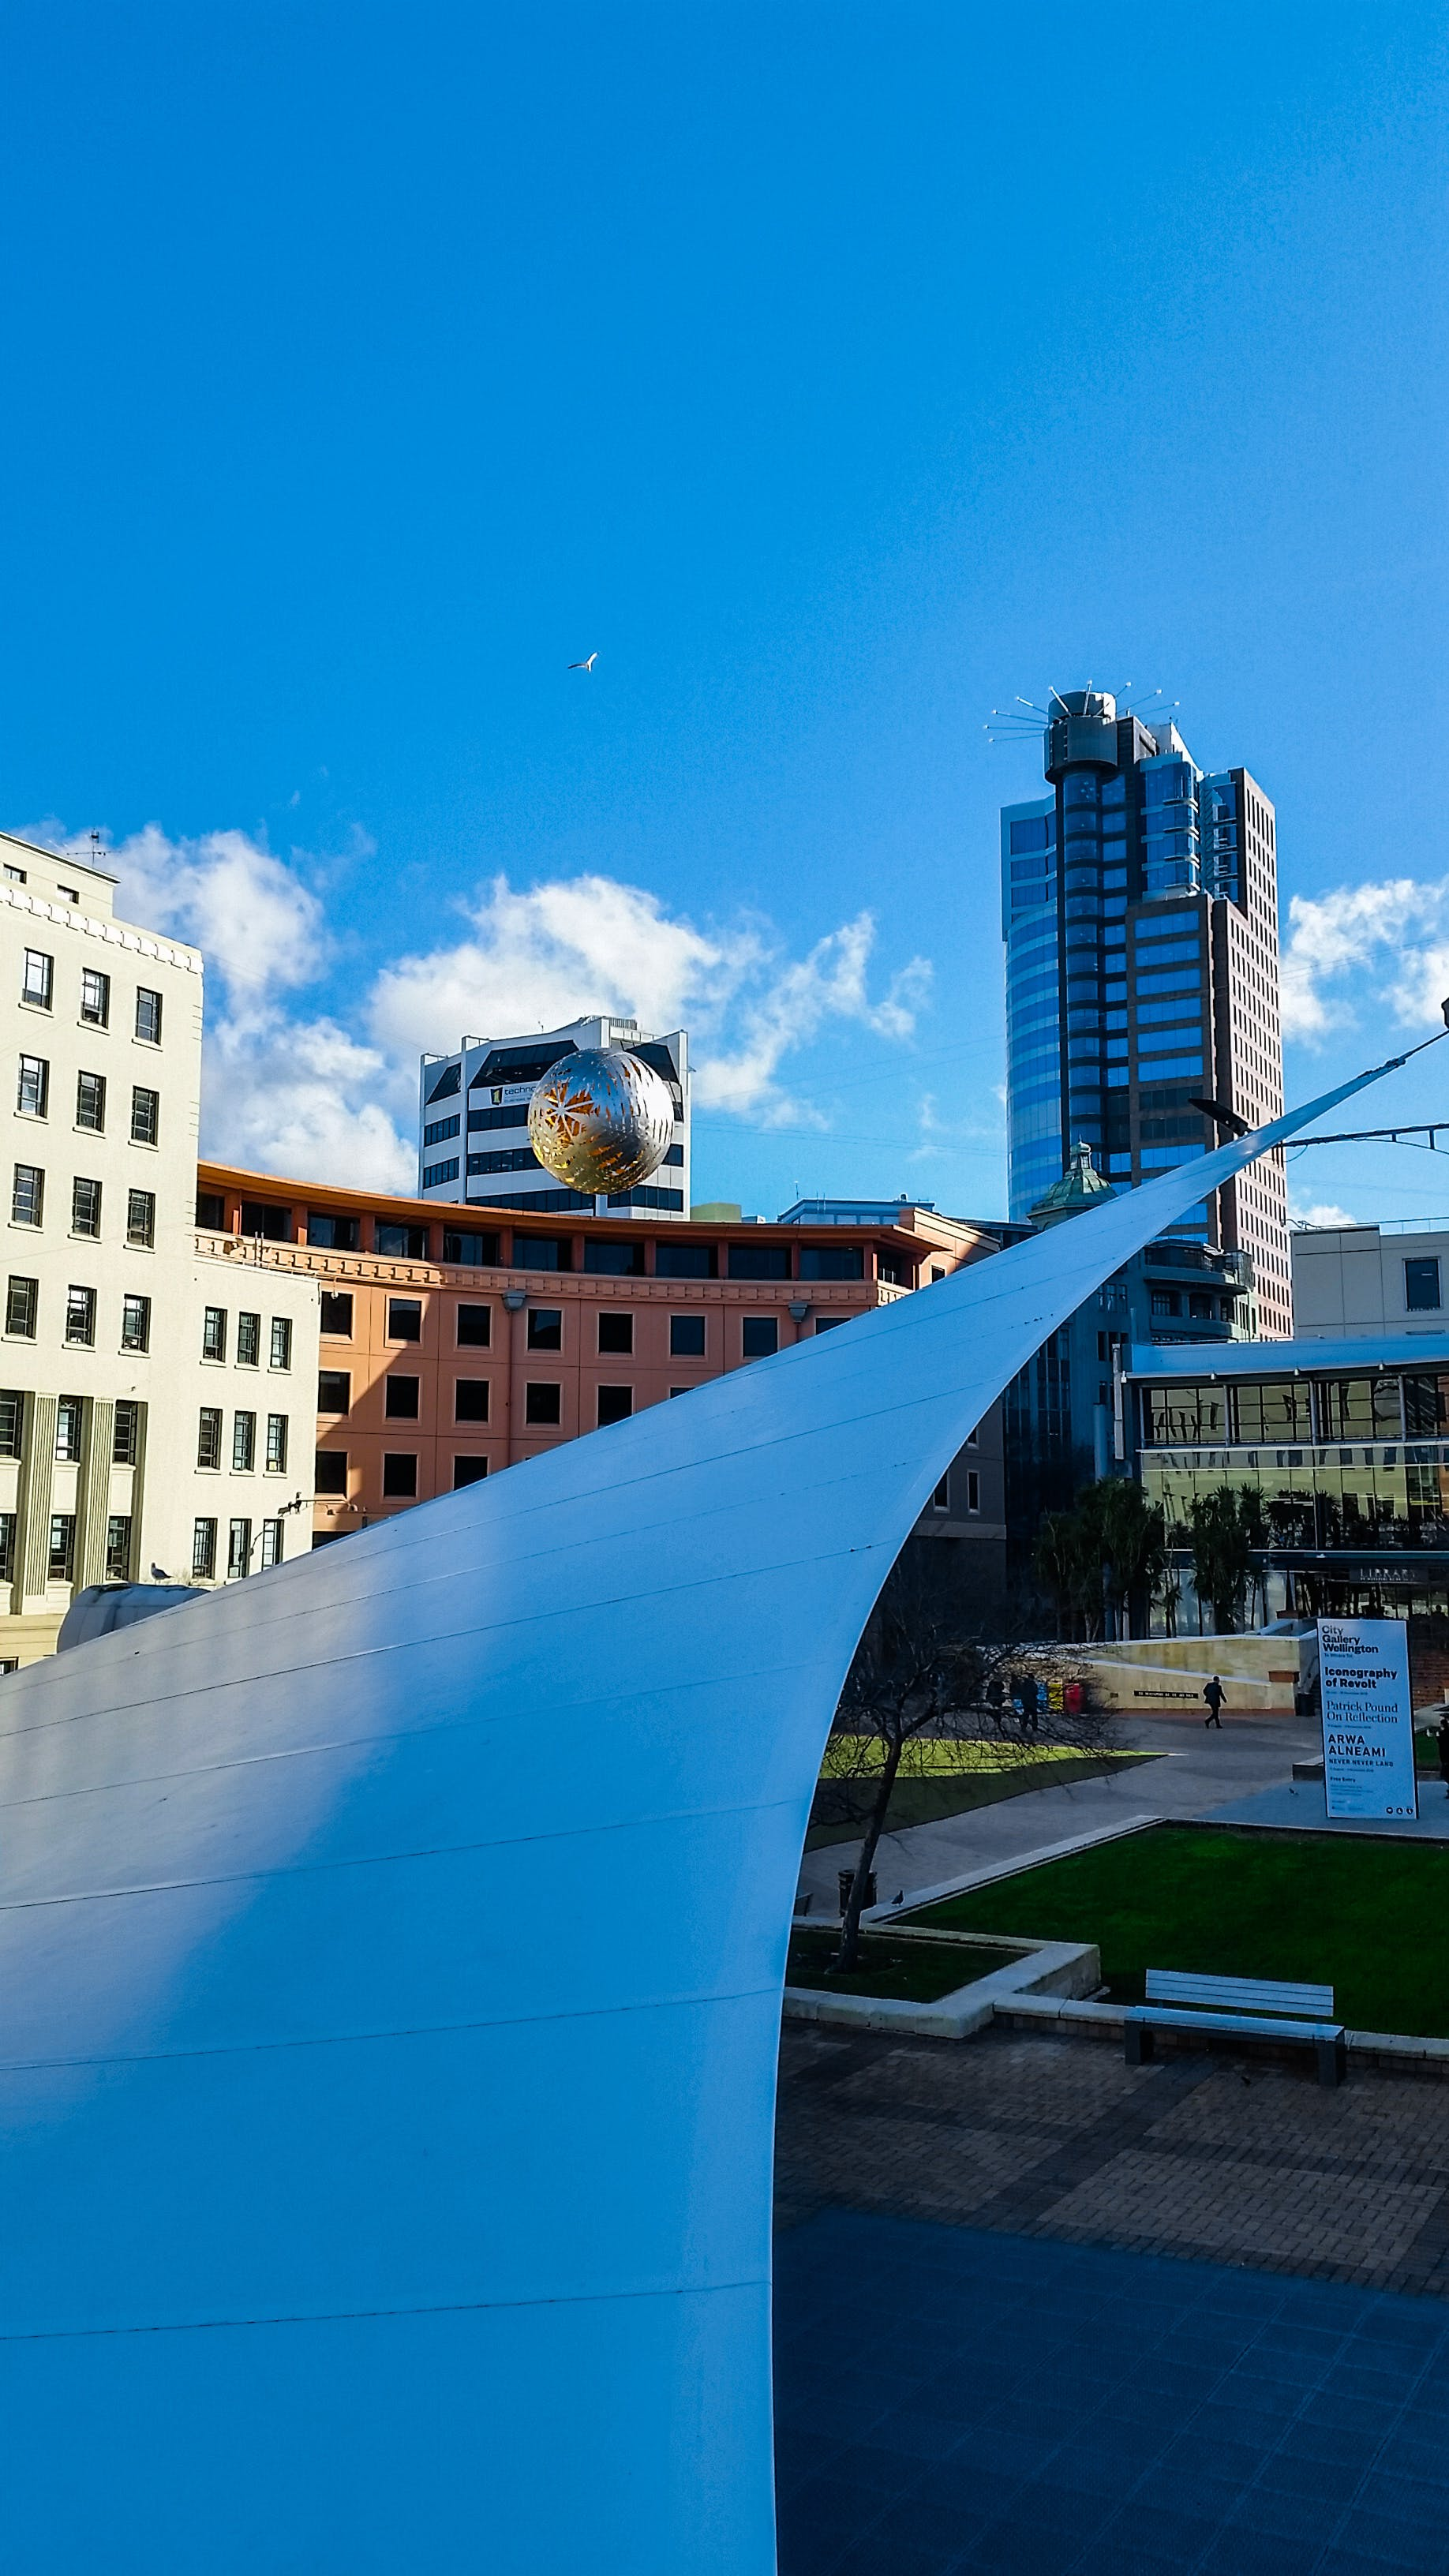 Free stock photo of architecture, blue sky, city park, steel